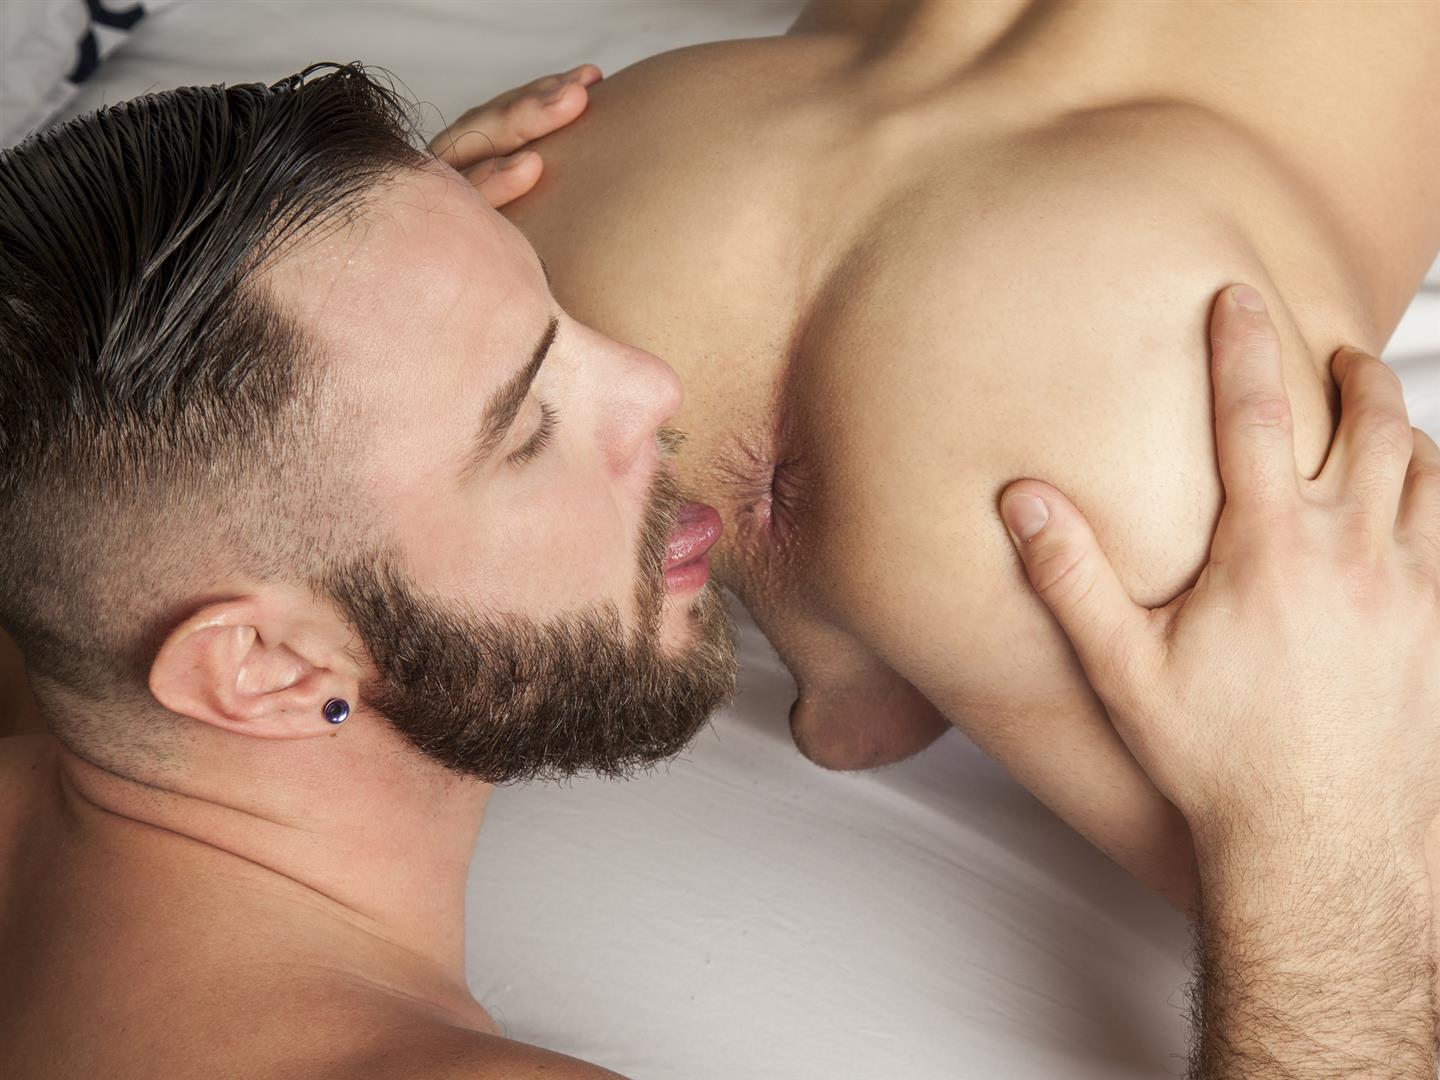 Randy-Blue-Nick-Sterling-and-Lukas-Valentine-Beefy-Cub-Bareback-Sex-Amateur-Gay-Porn-37 Beefy Nick Sterling Barebacks Lukas Valentine With His Thick Cock